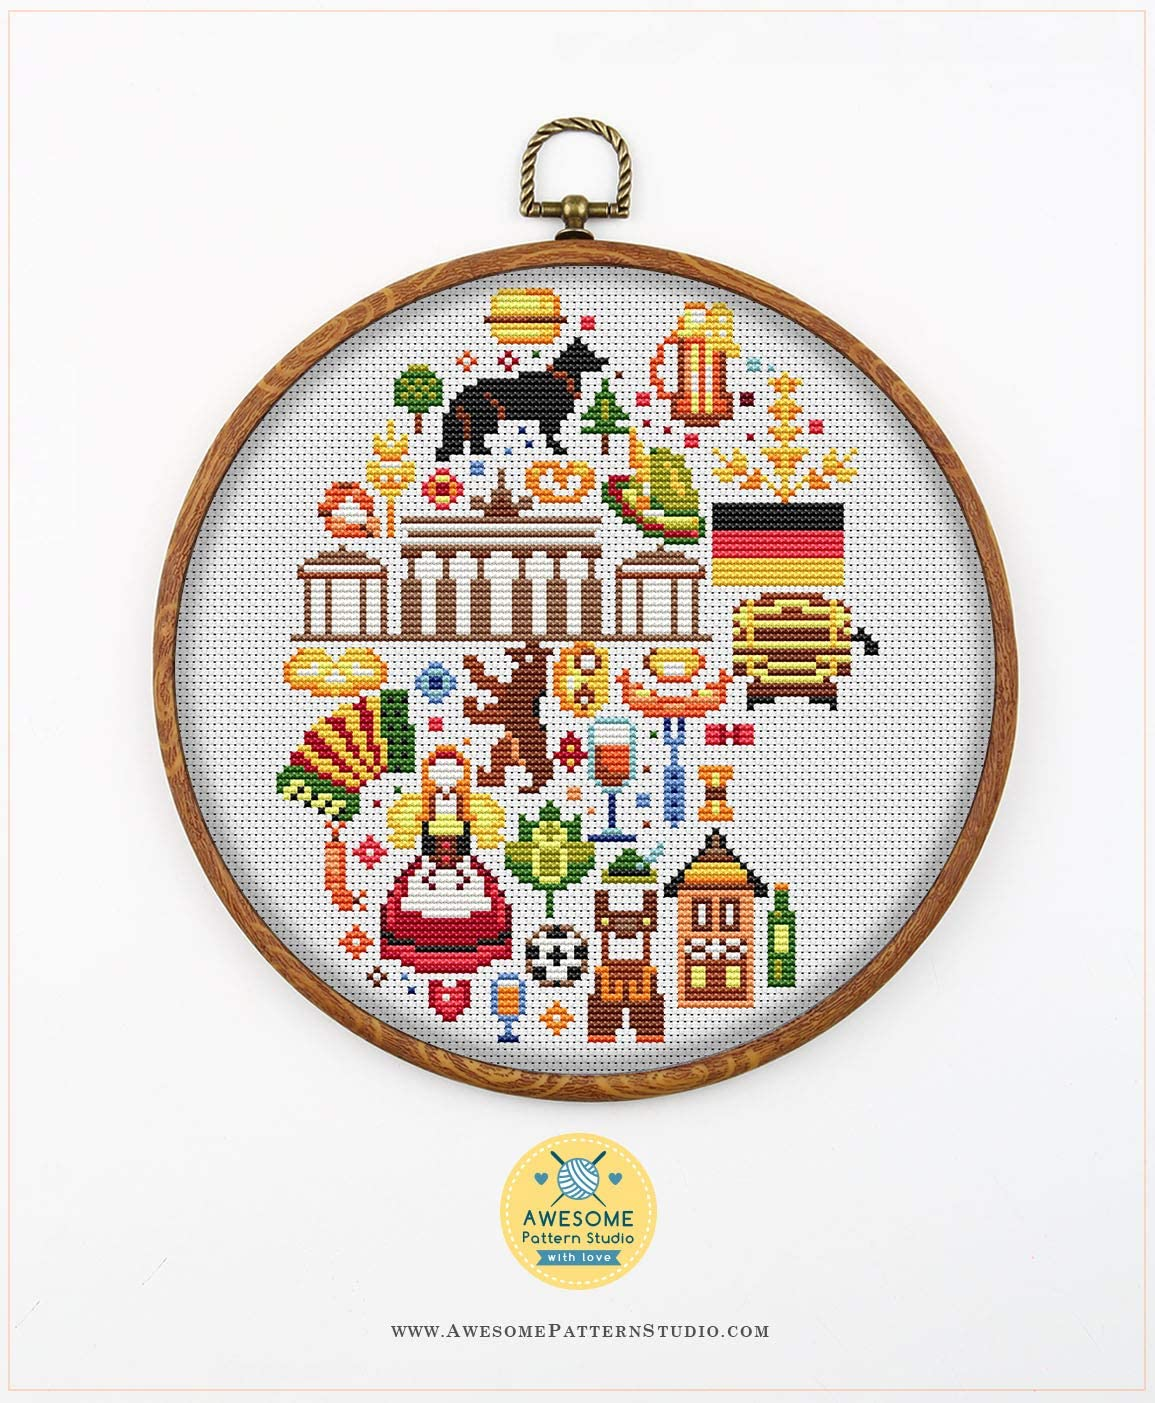 Threads Embroidery Pattern Kit Fabric Needles Embroidery Hoop and 4 Printed Color Schemes Inside Germany in Icons K844 Counted Cross Stitch KIT#3